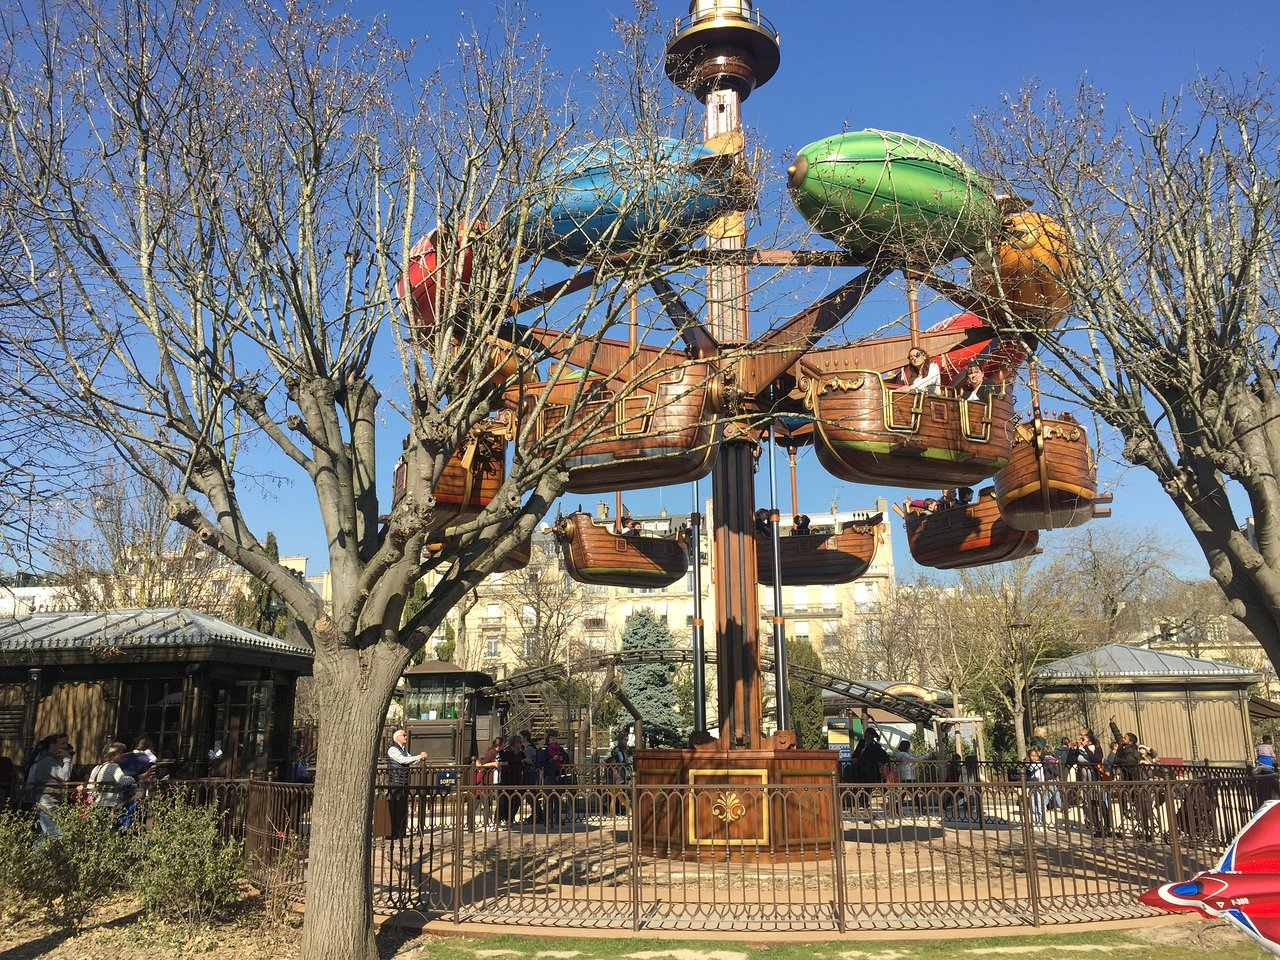 Jardin D Acclimatation Paris 2020 All You Need To Know Before